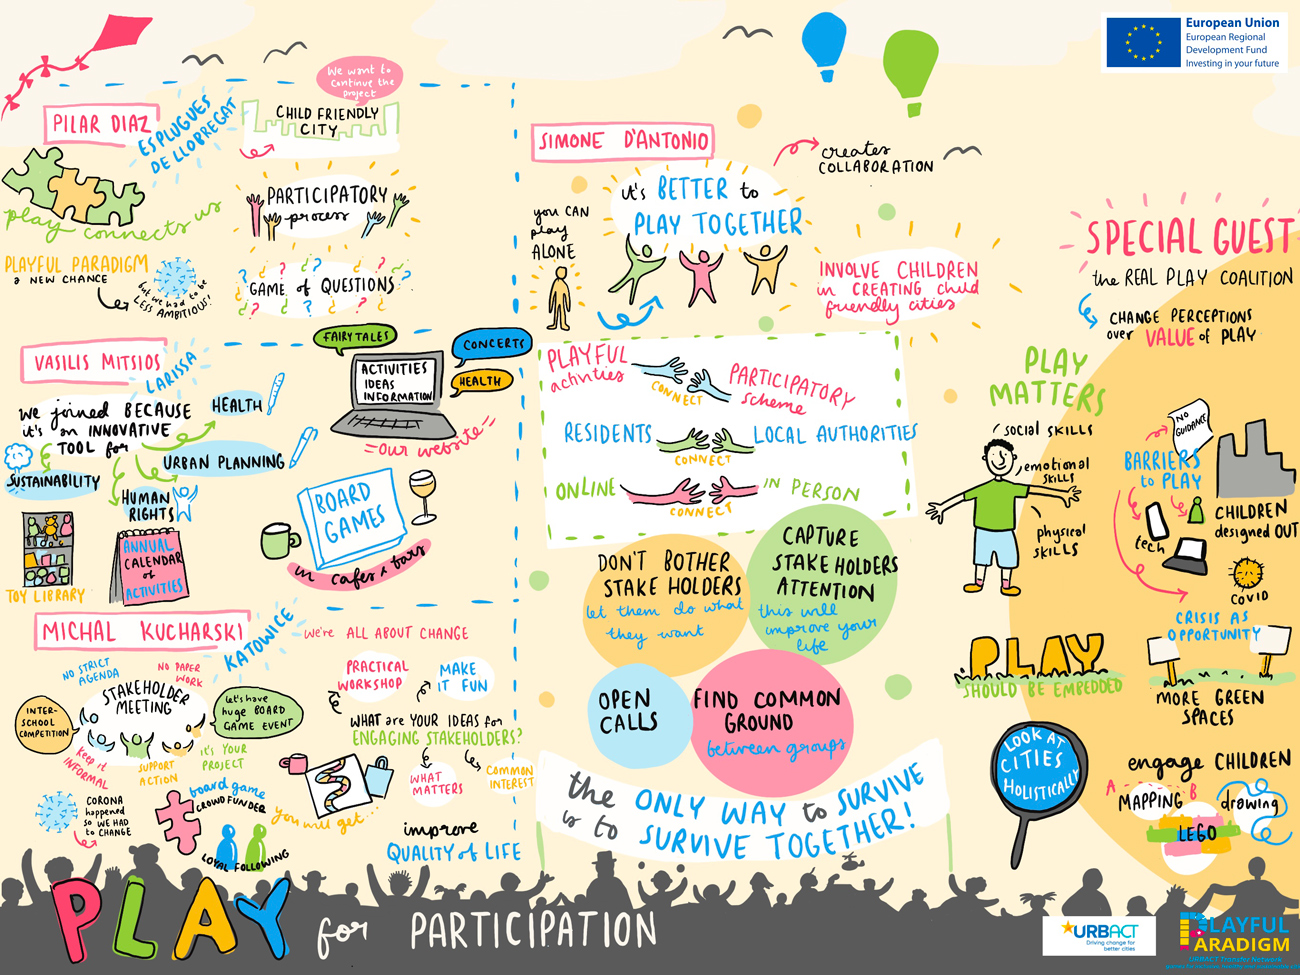 Graphic harvest from the Playful Paradigm Final Event - DAY 1 Afternoon Session